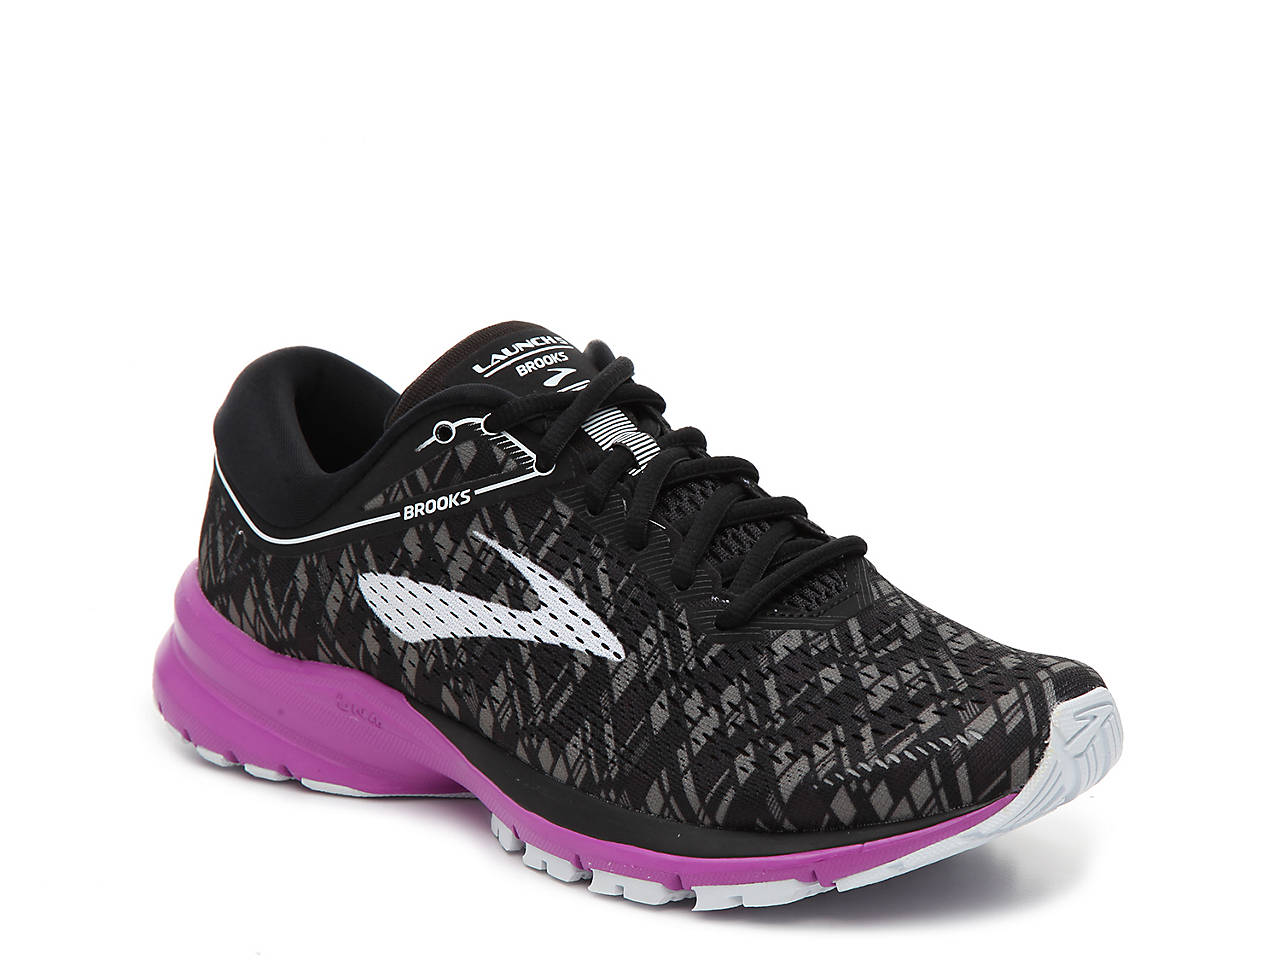 841335a62e8 Brooks Launch 5 Running Shoe - Women s Women s Shoes